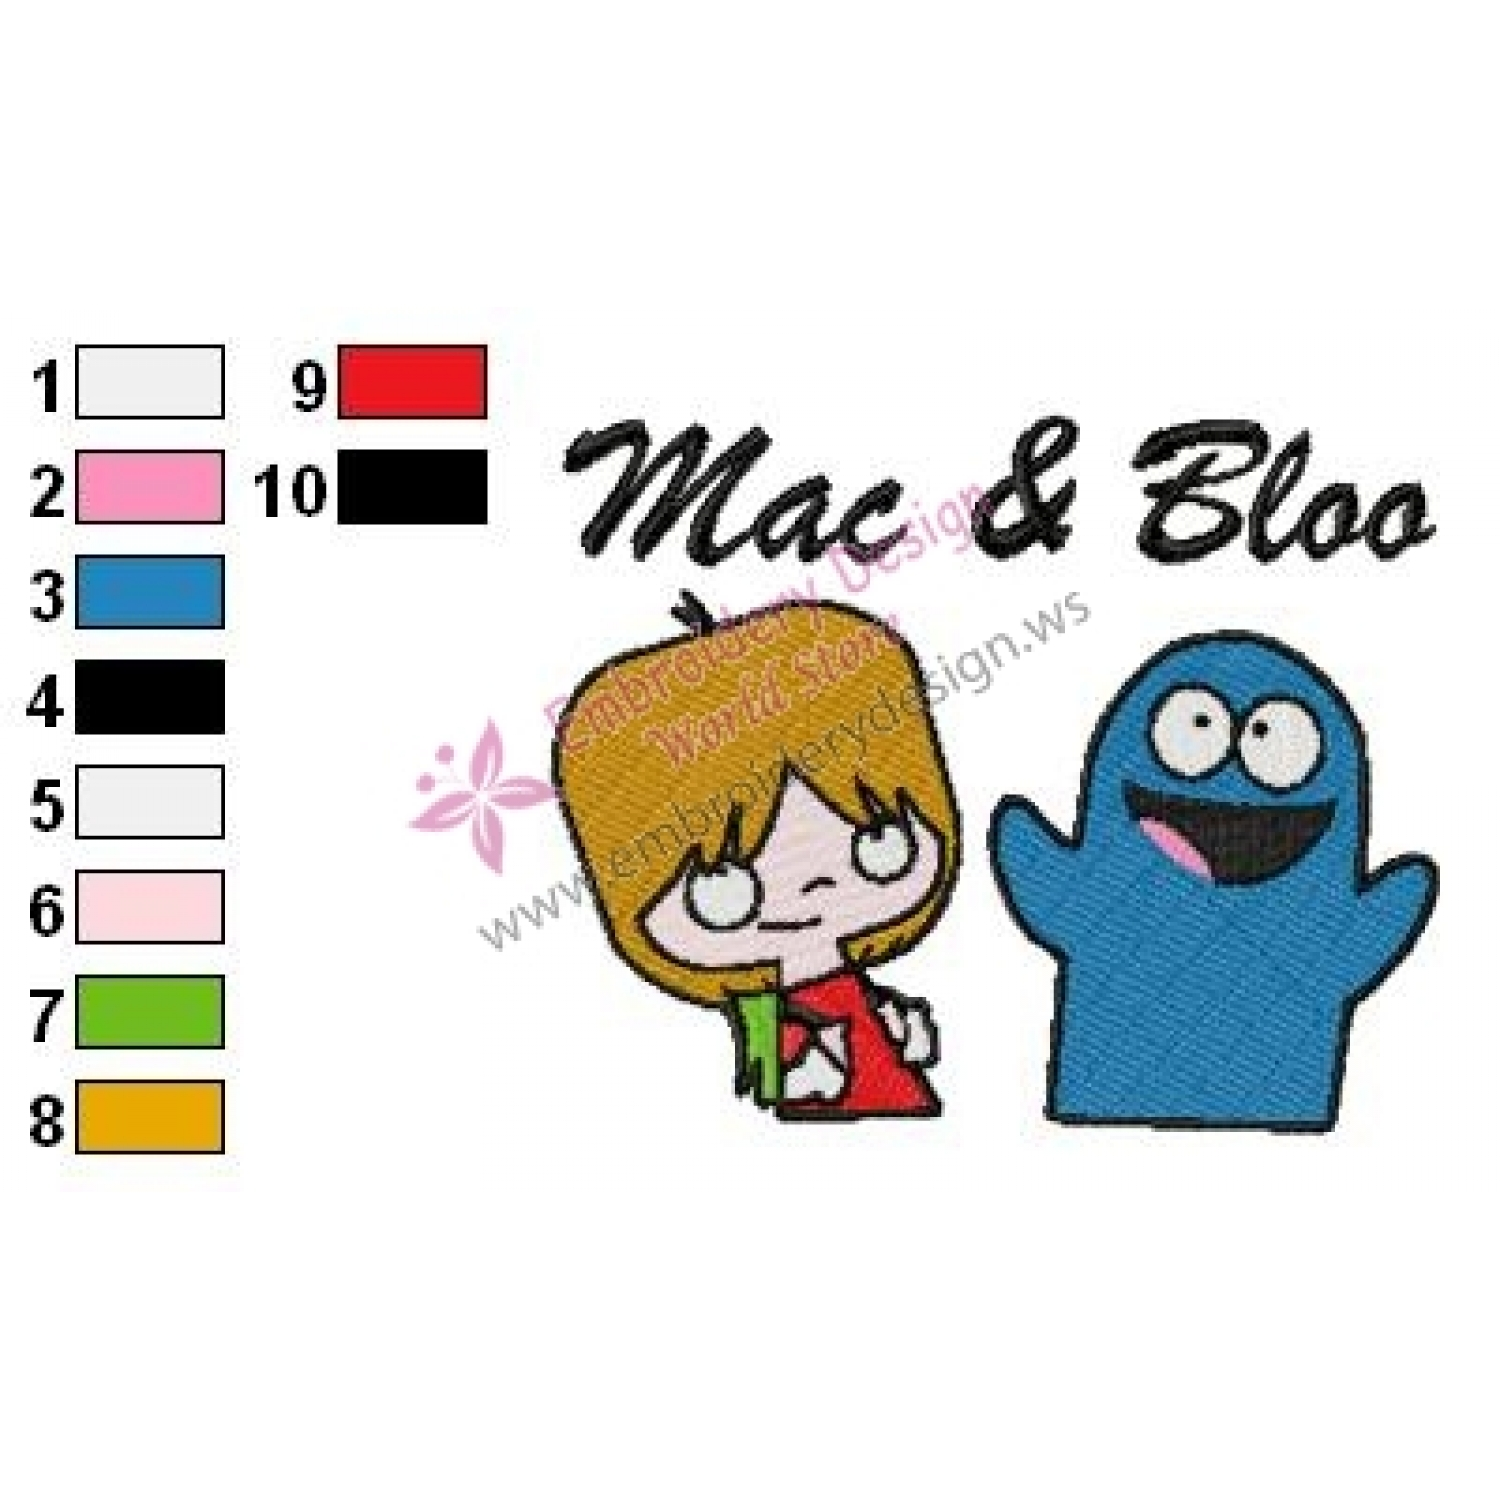 Mac and Bloo Fosters Home for Imaginary Friends Embroidery Design